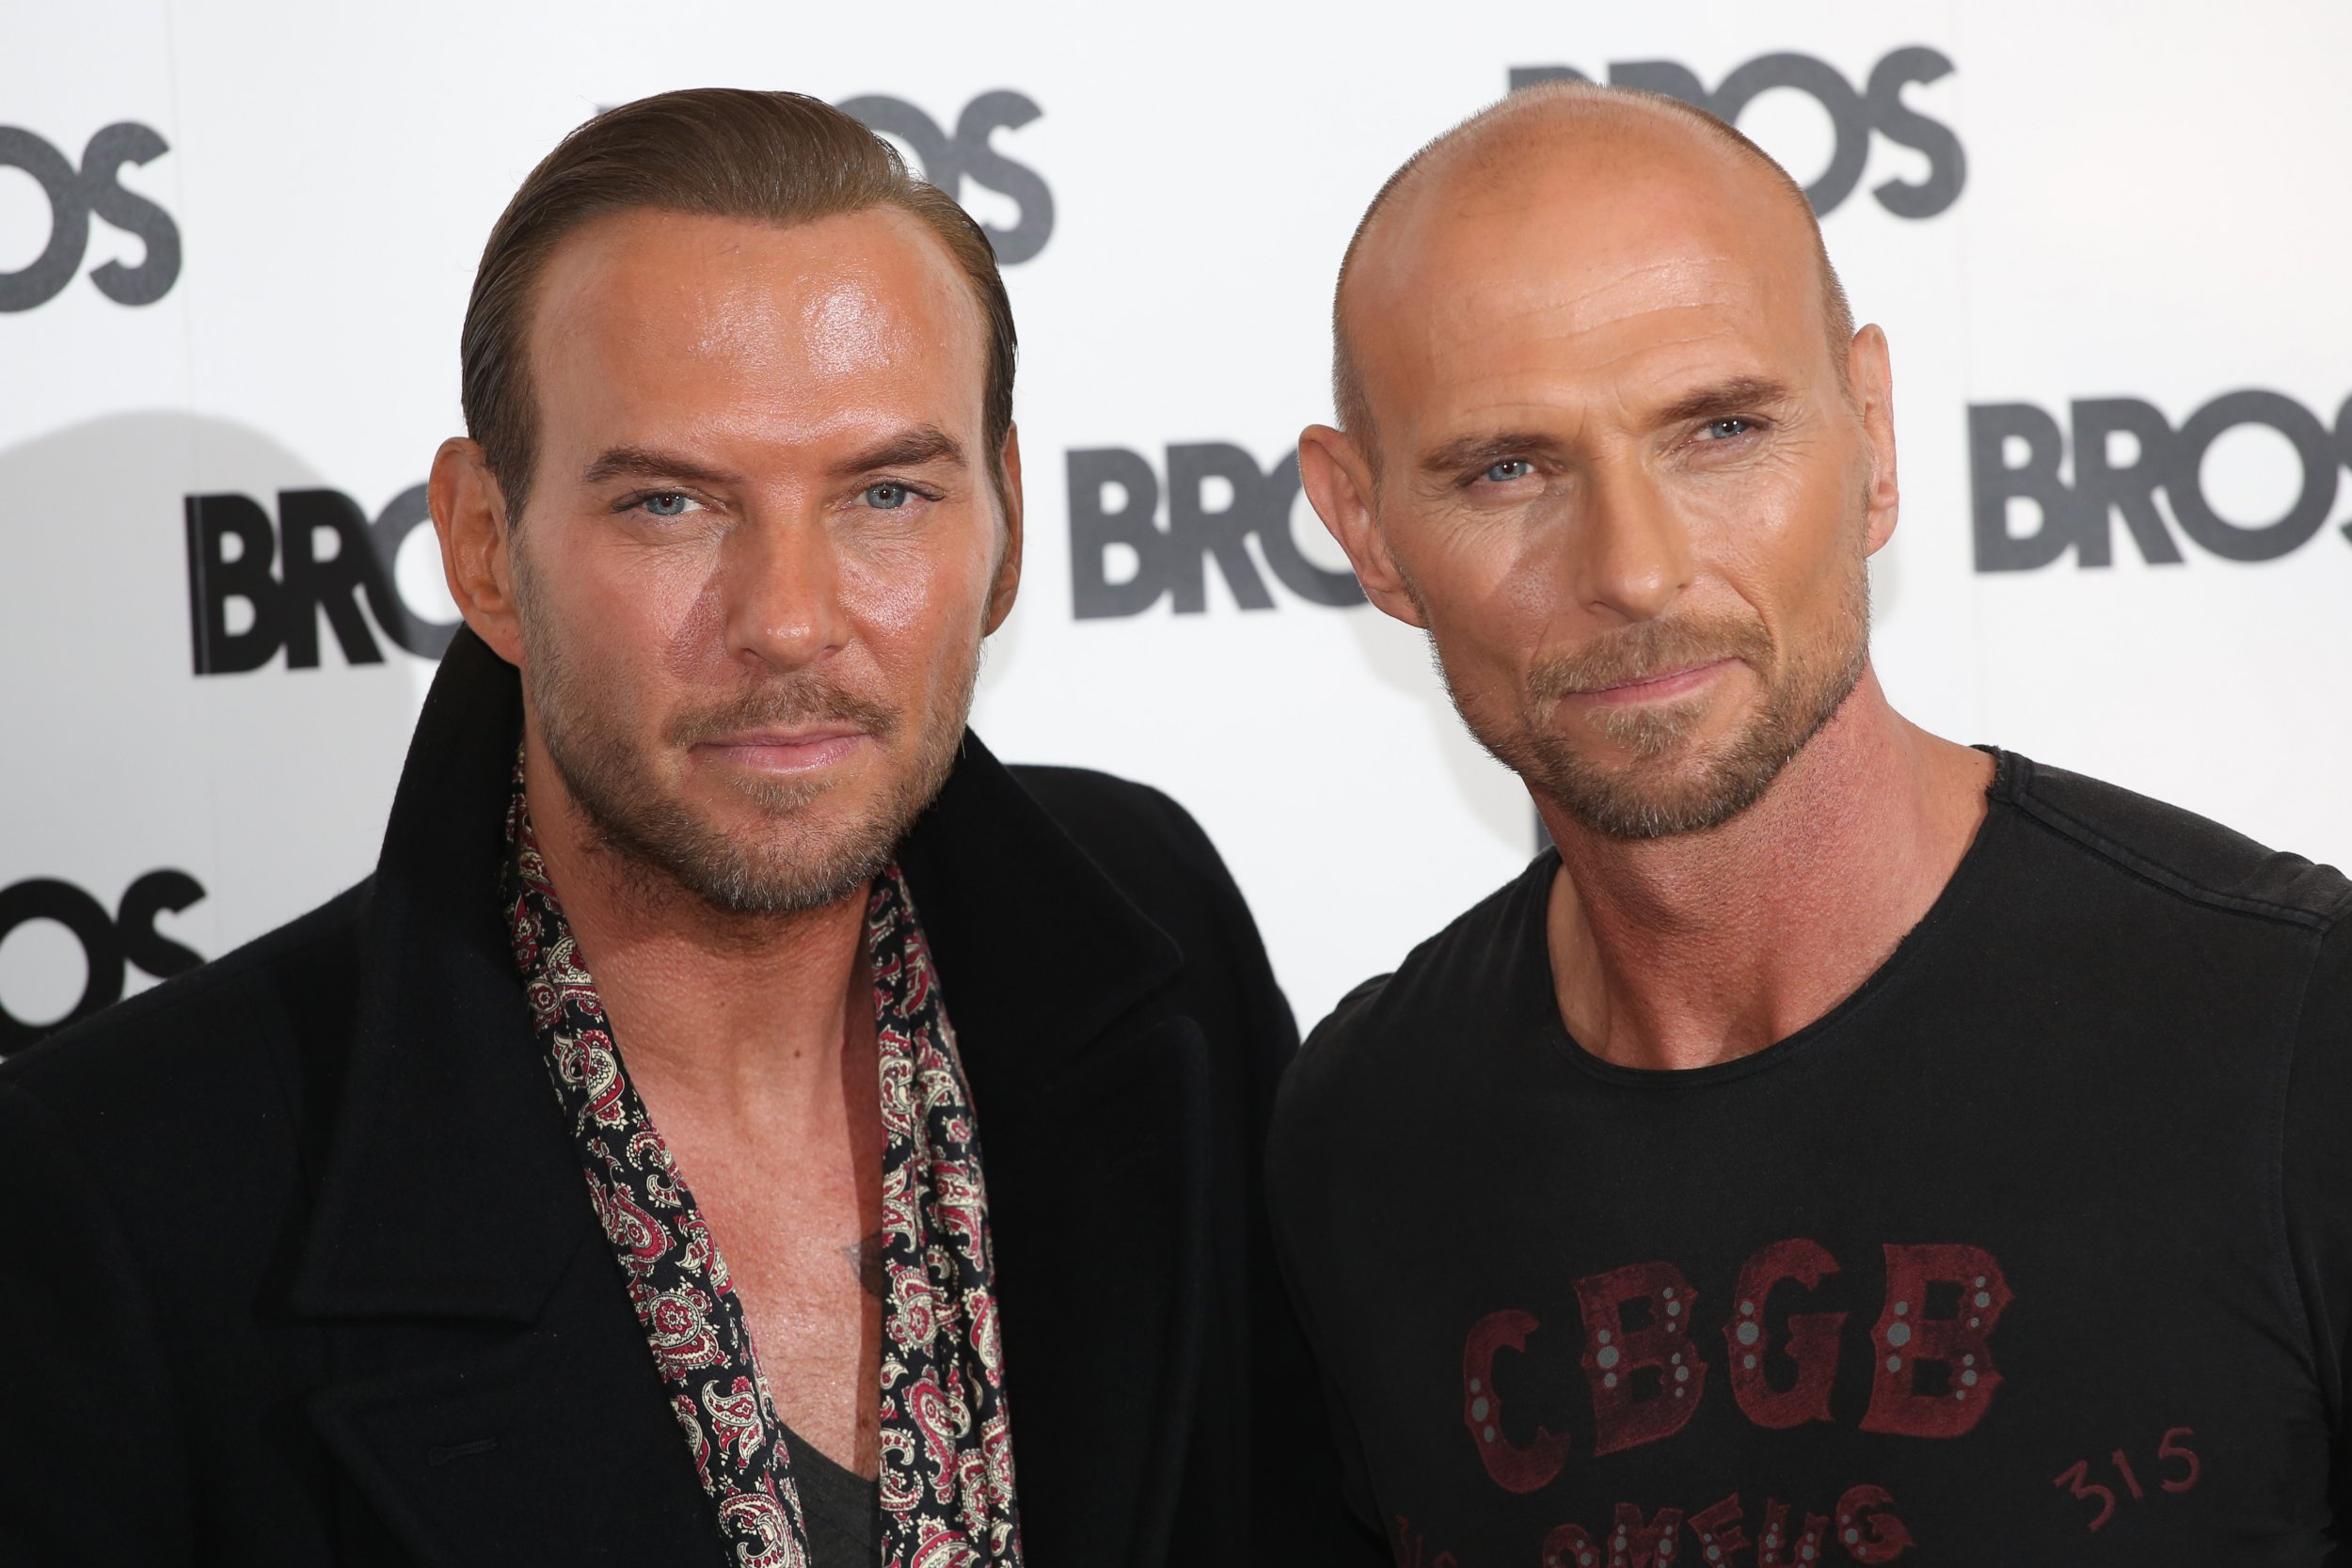 Bros reunited after Matt and Luke 'didn't speak to each other for a decade'